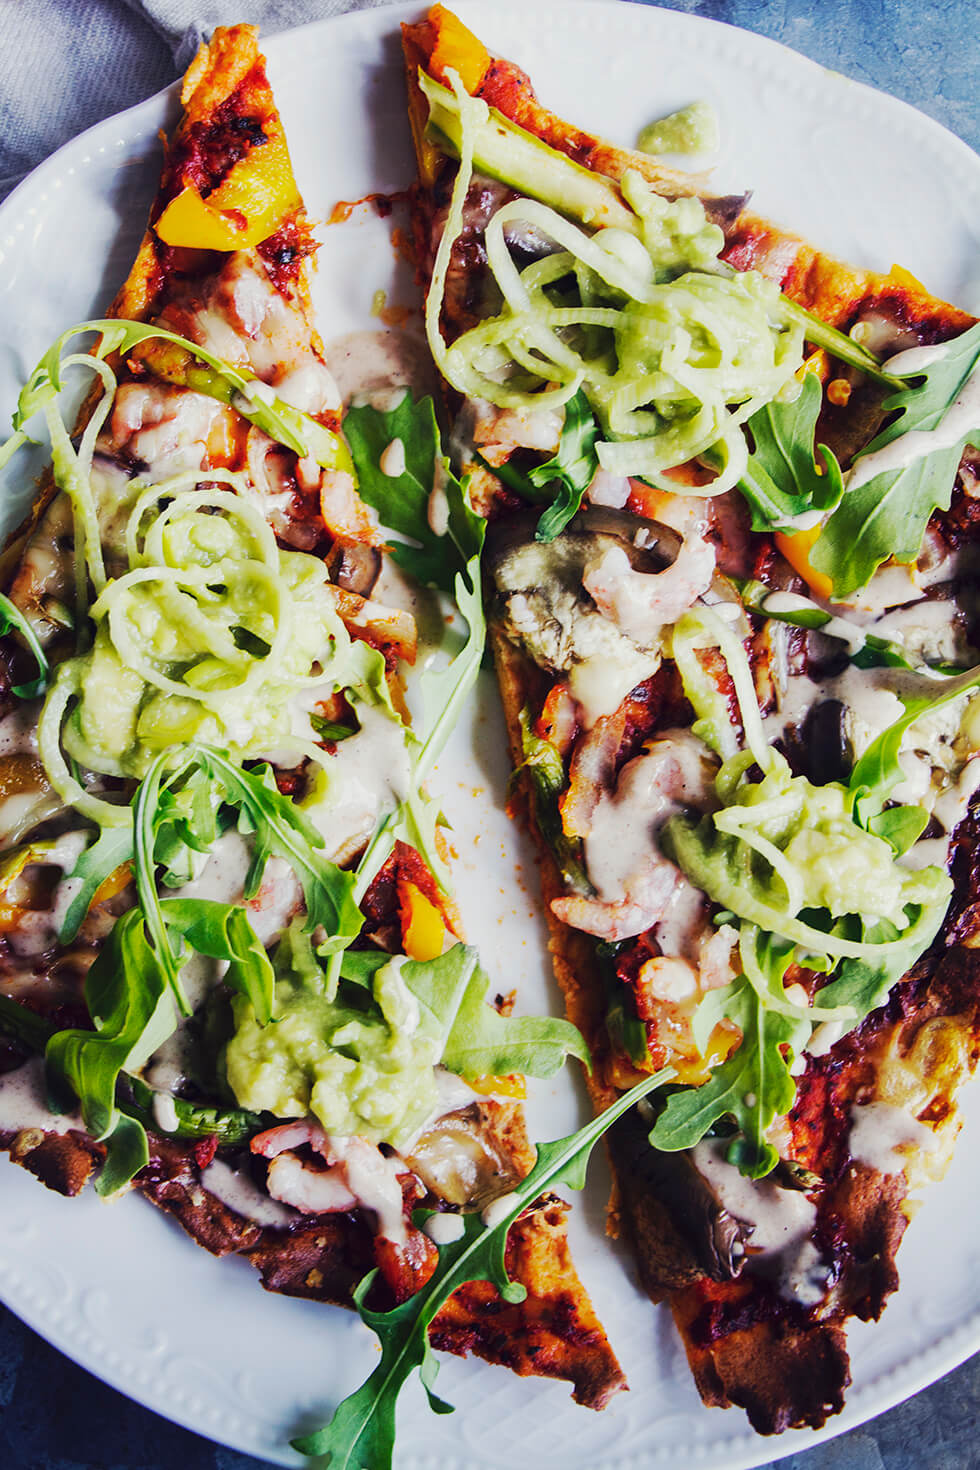 glutenfri_pizza_friendly_food_hurbrasomhelst_hanna_goransson_4